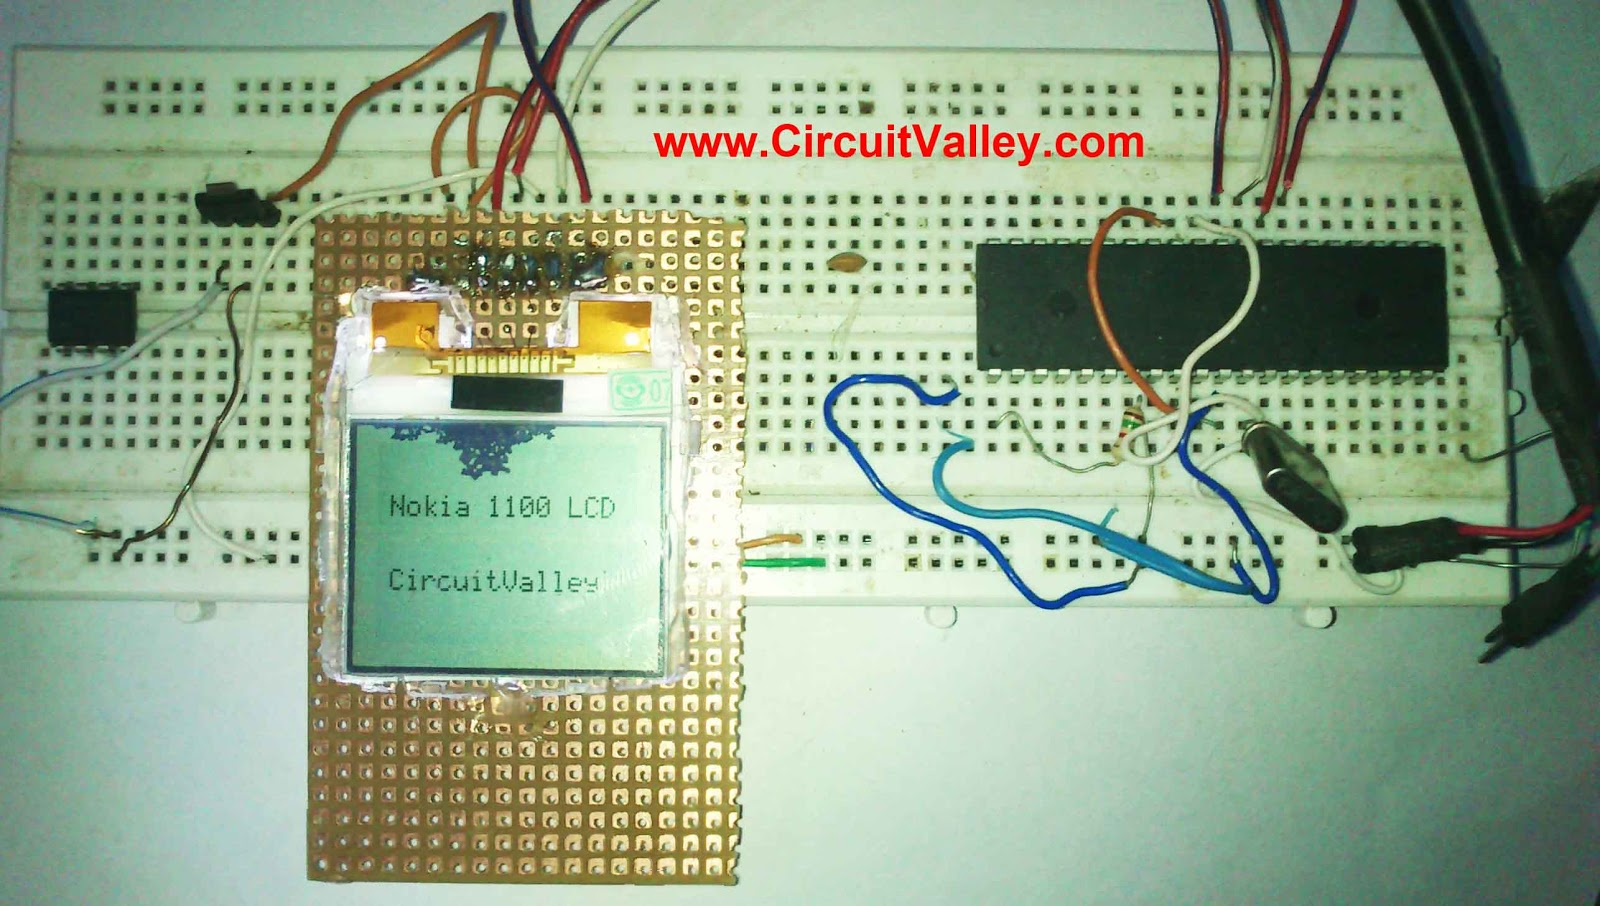 Embedded Engineering Nokia 1100 Lcd Interfacing With Microcontroller Pic16f73 Based Temperature Indicator And Controller Best